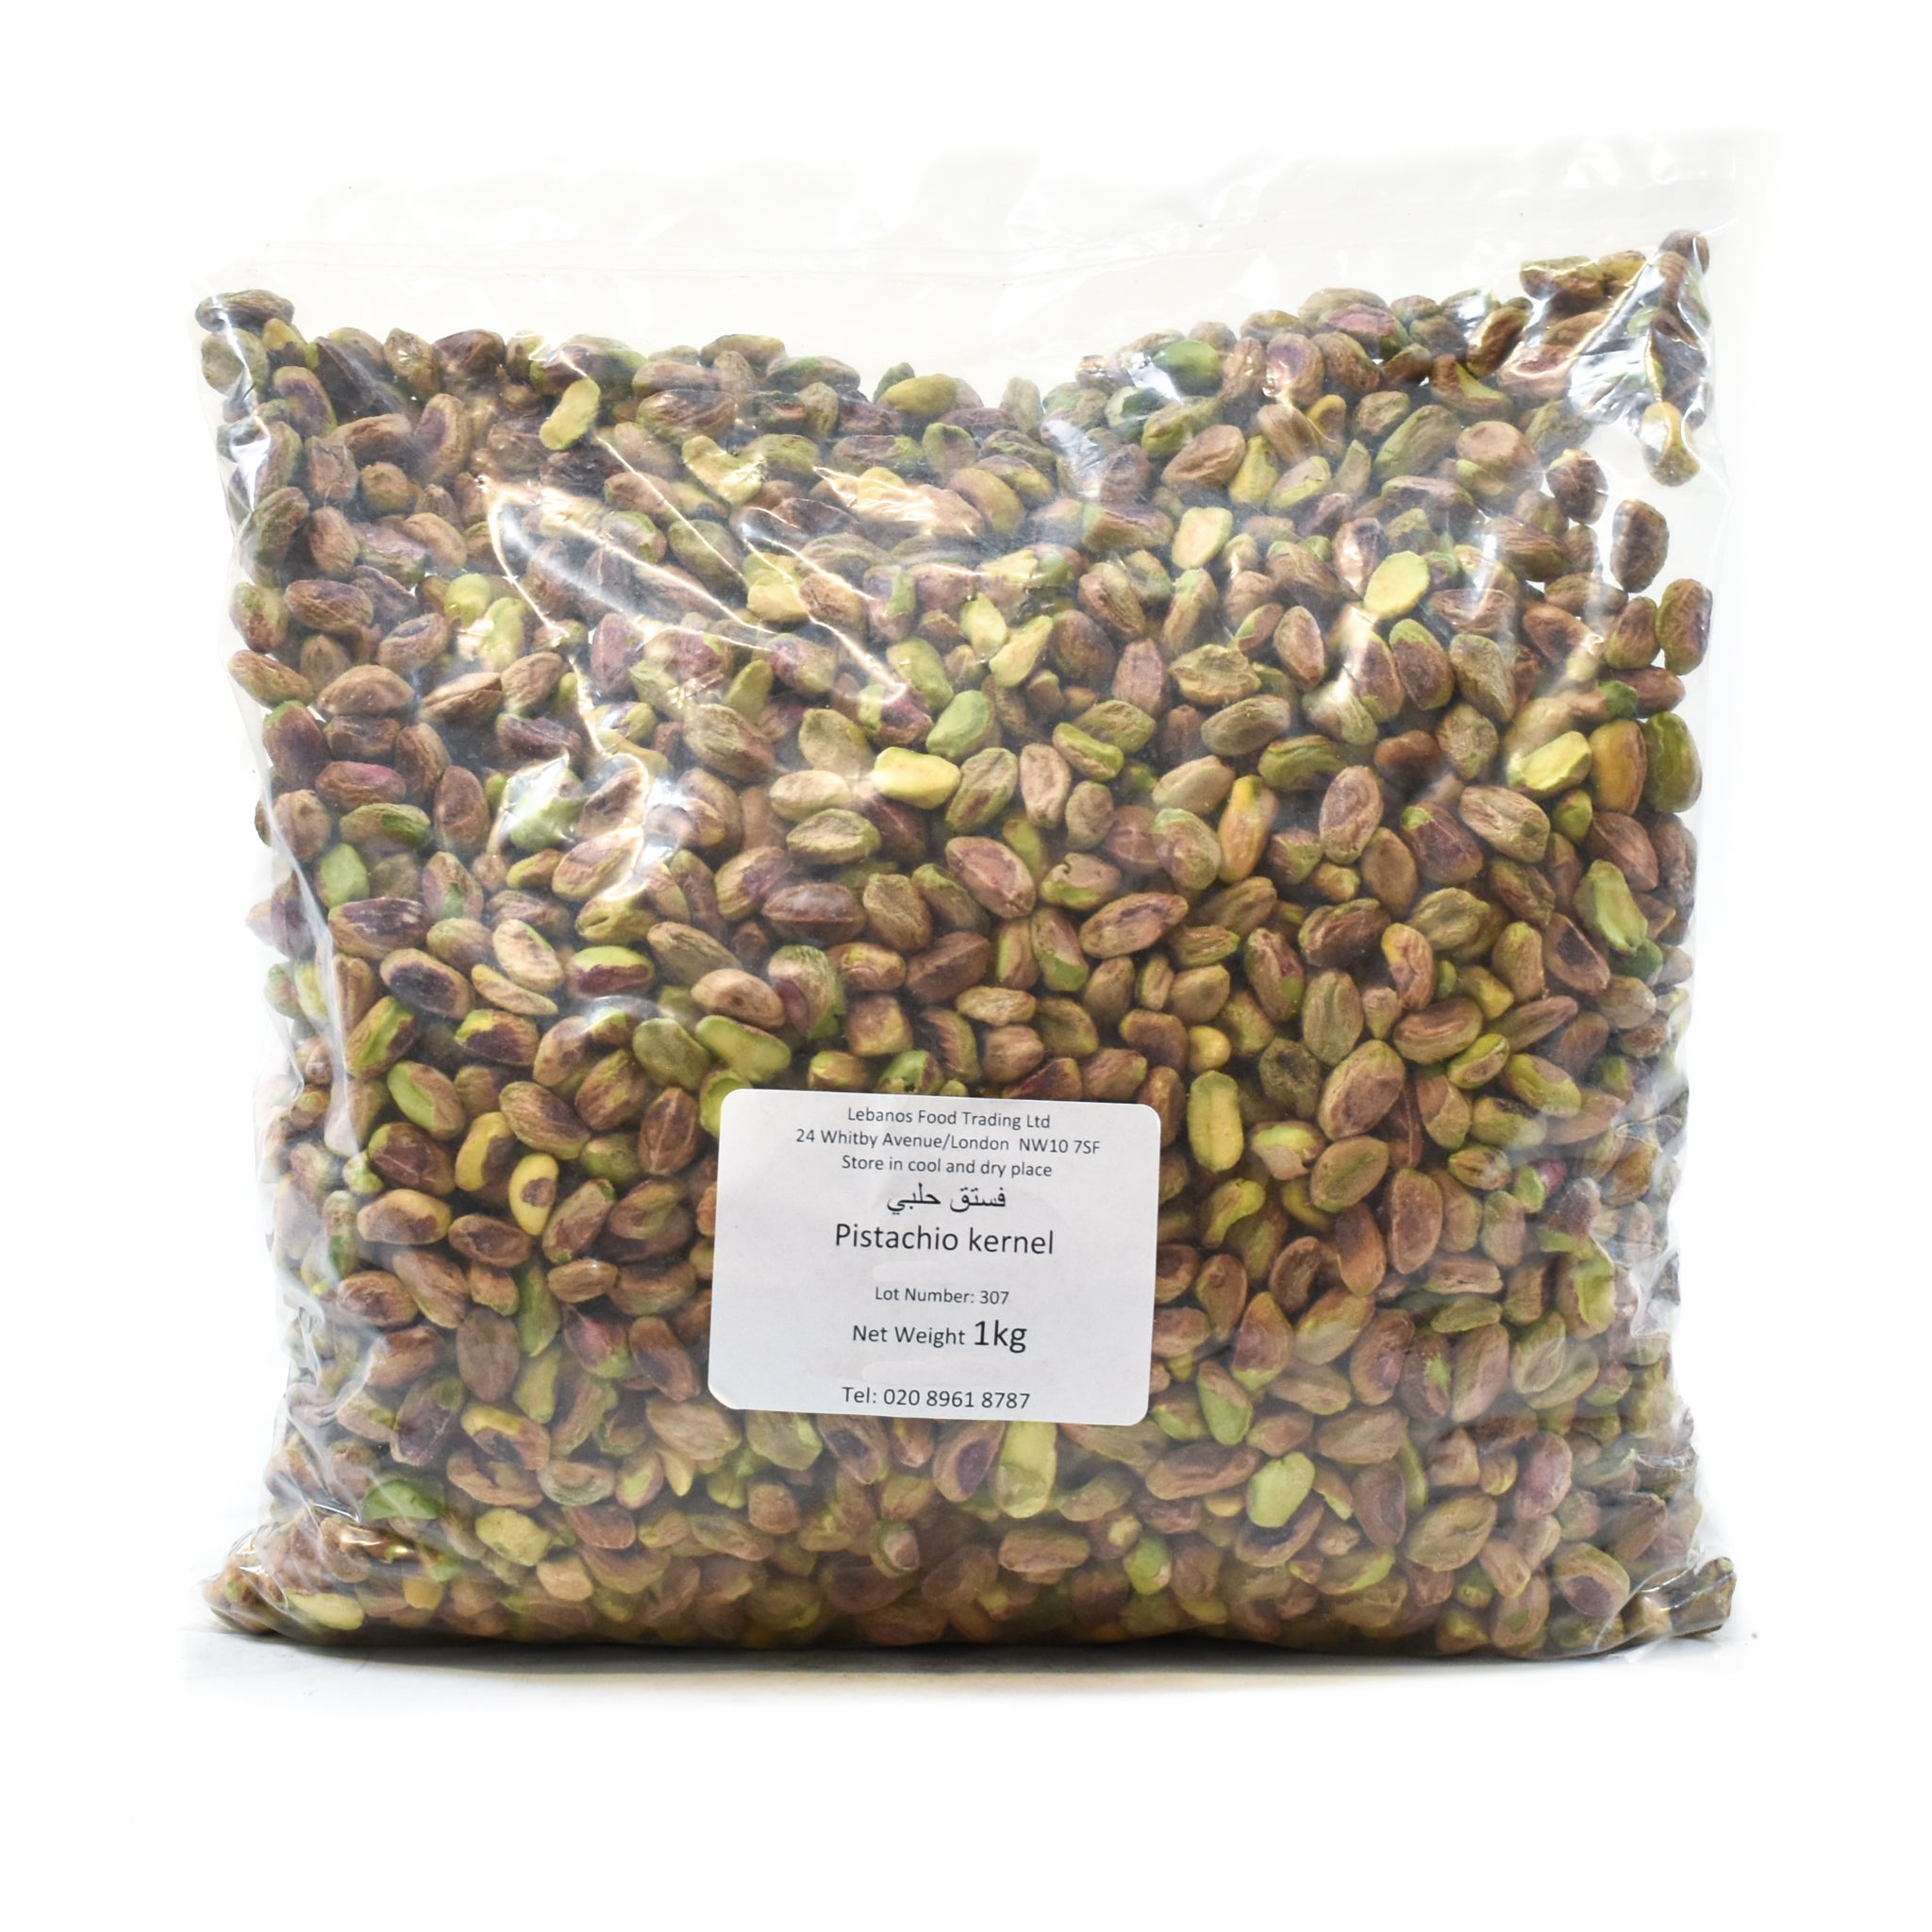 Lebanos Pistachio Kernels 1kg Ingredients Baking Ingredients Baking Nuts & Nut Pastes Middle Eastern Food